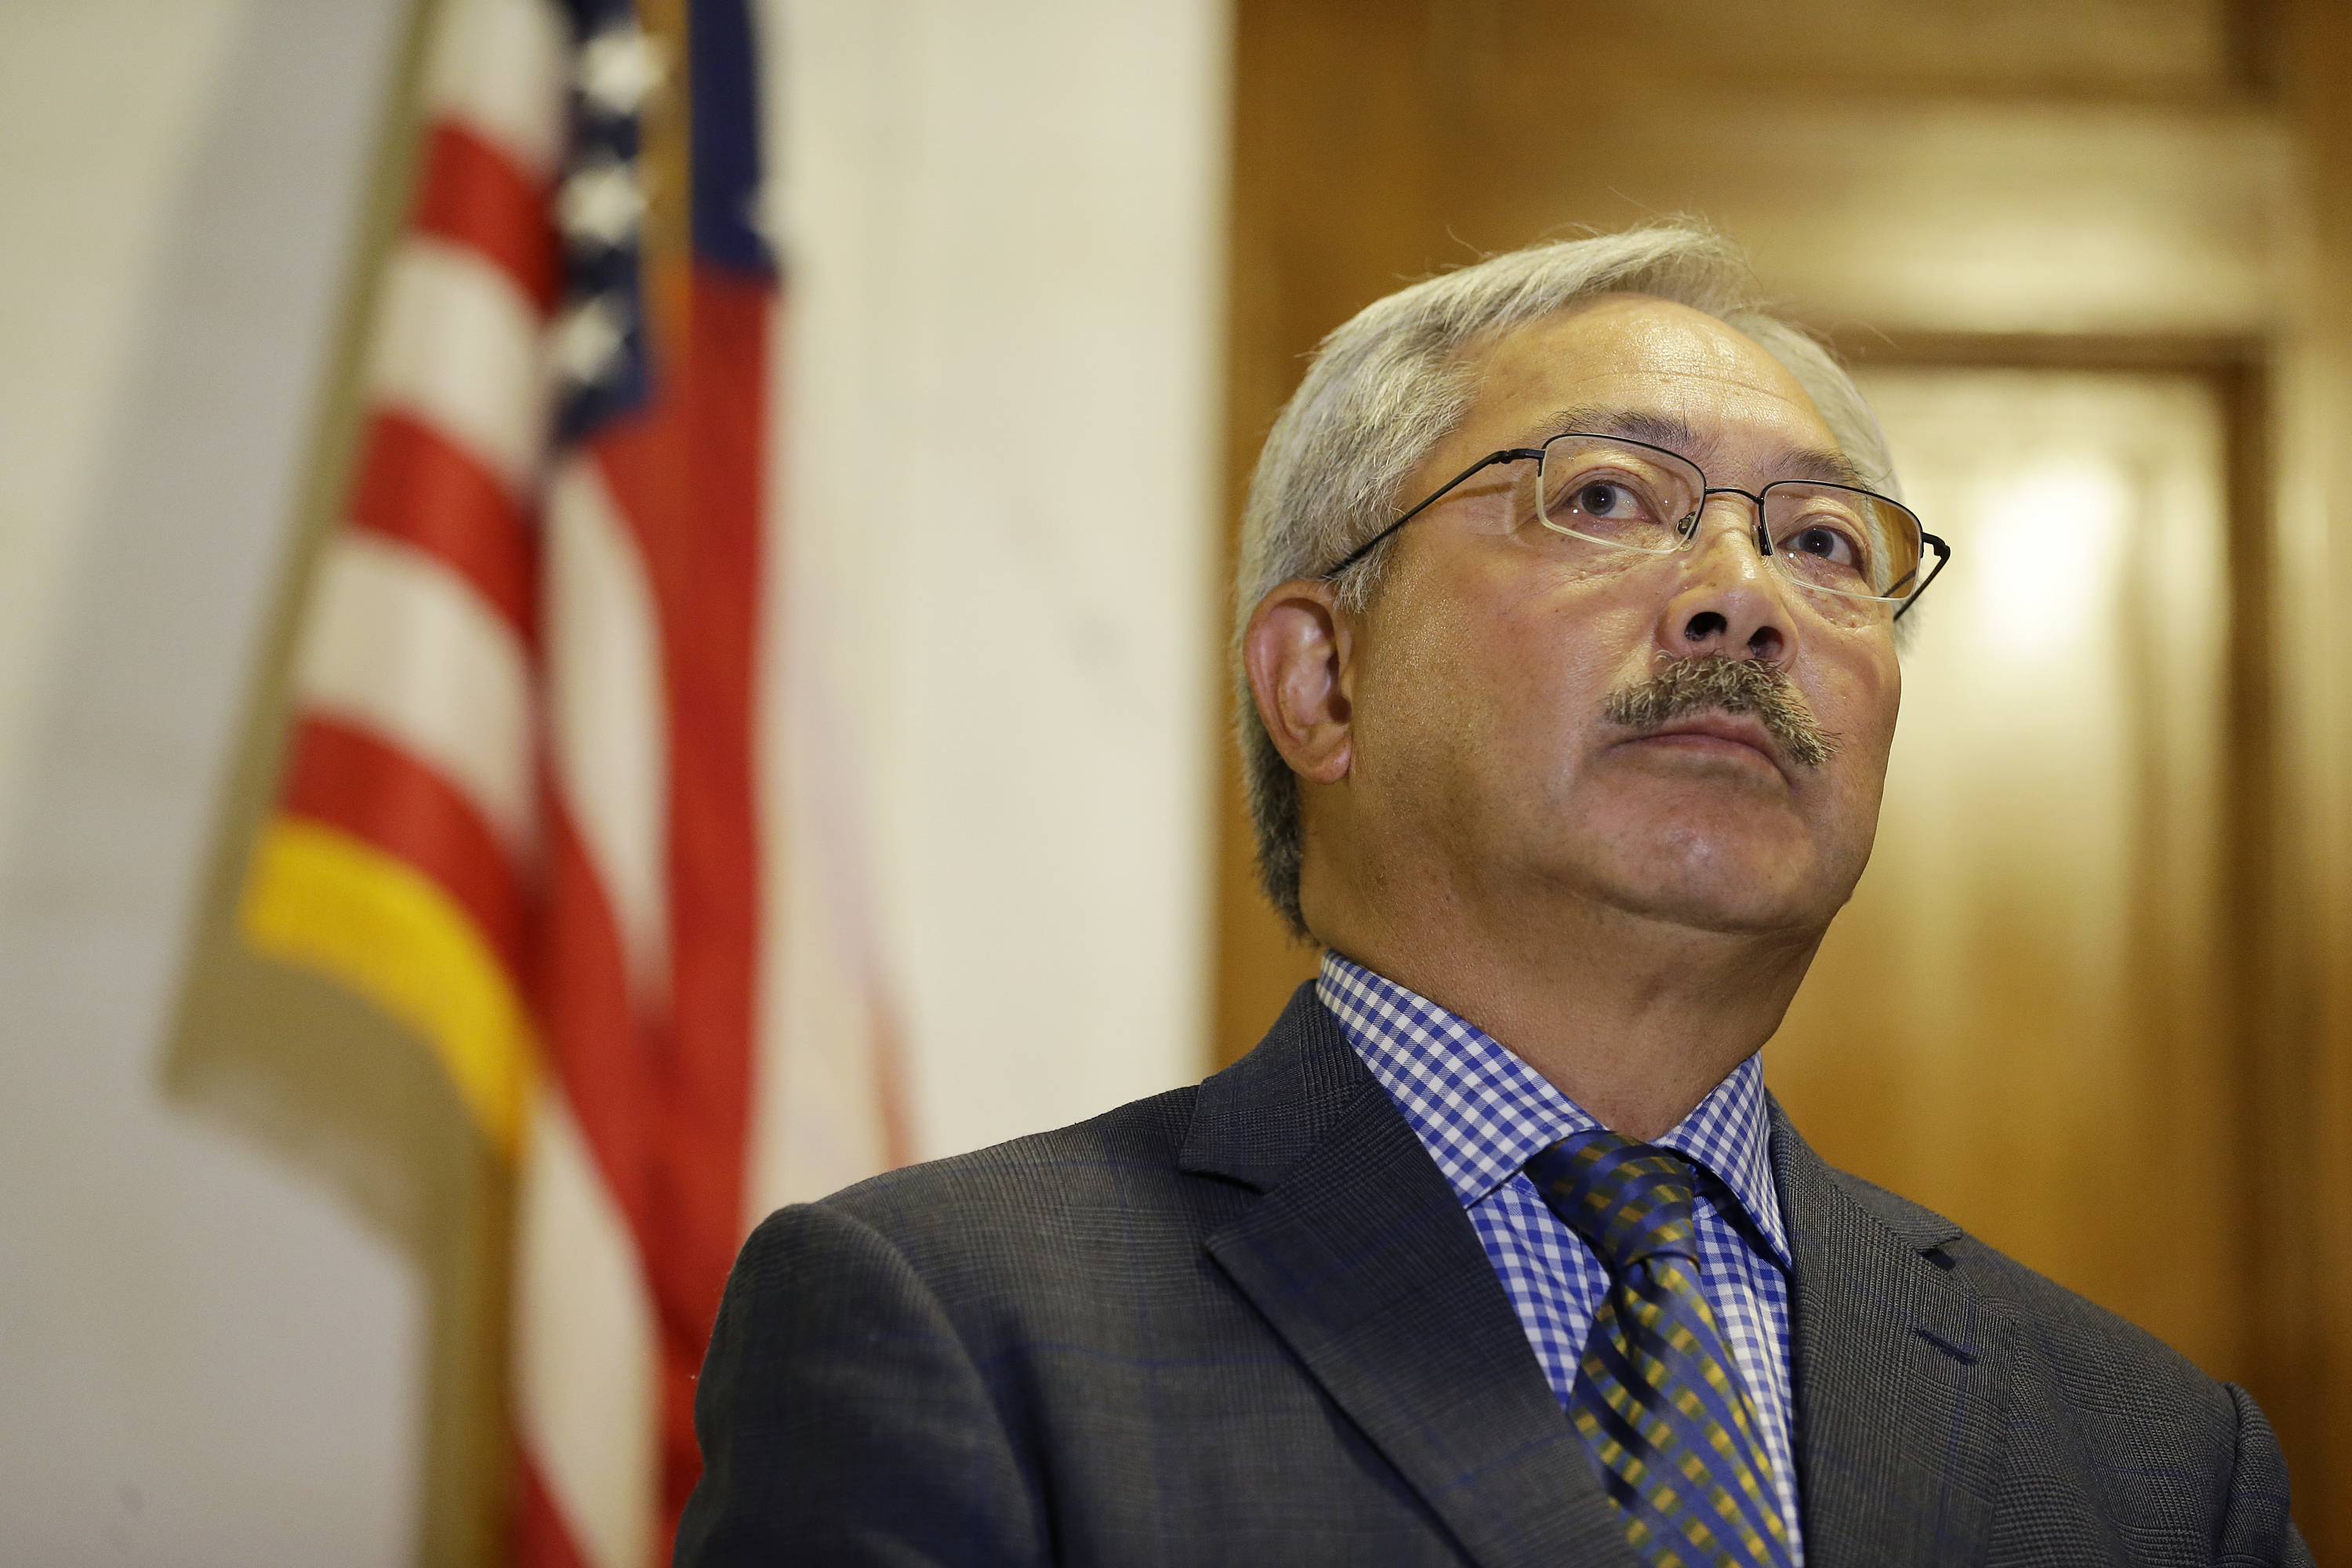 <div class='meta'><div class='origin-logo' data-origin='none'></div><span class='caption-text' data-credit='Eric Risberg/AP Photo'>Mayor Ed Lee listens to questions during a news conference at City Hall Tuesday, Aug. 15, 2017, in San Francisco.</span></div>